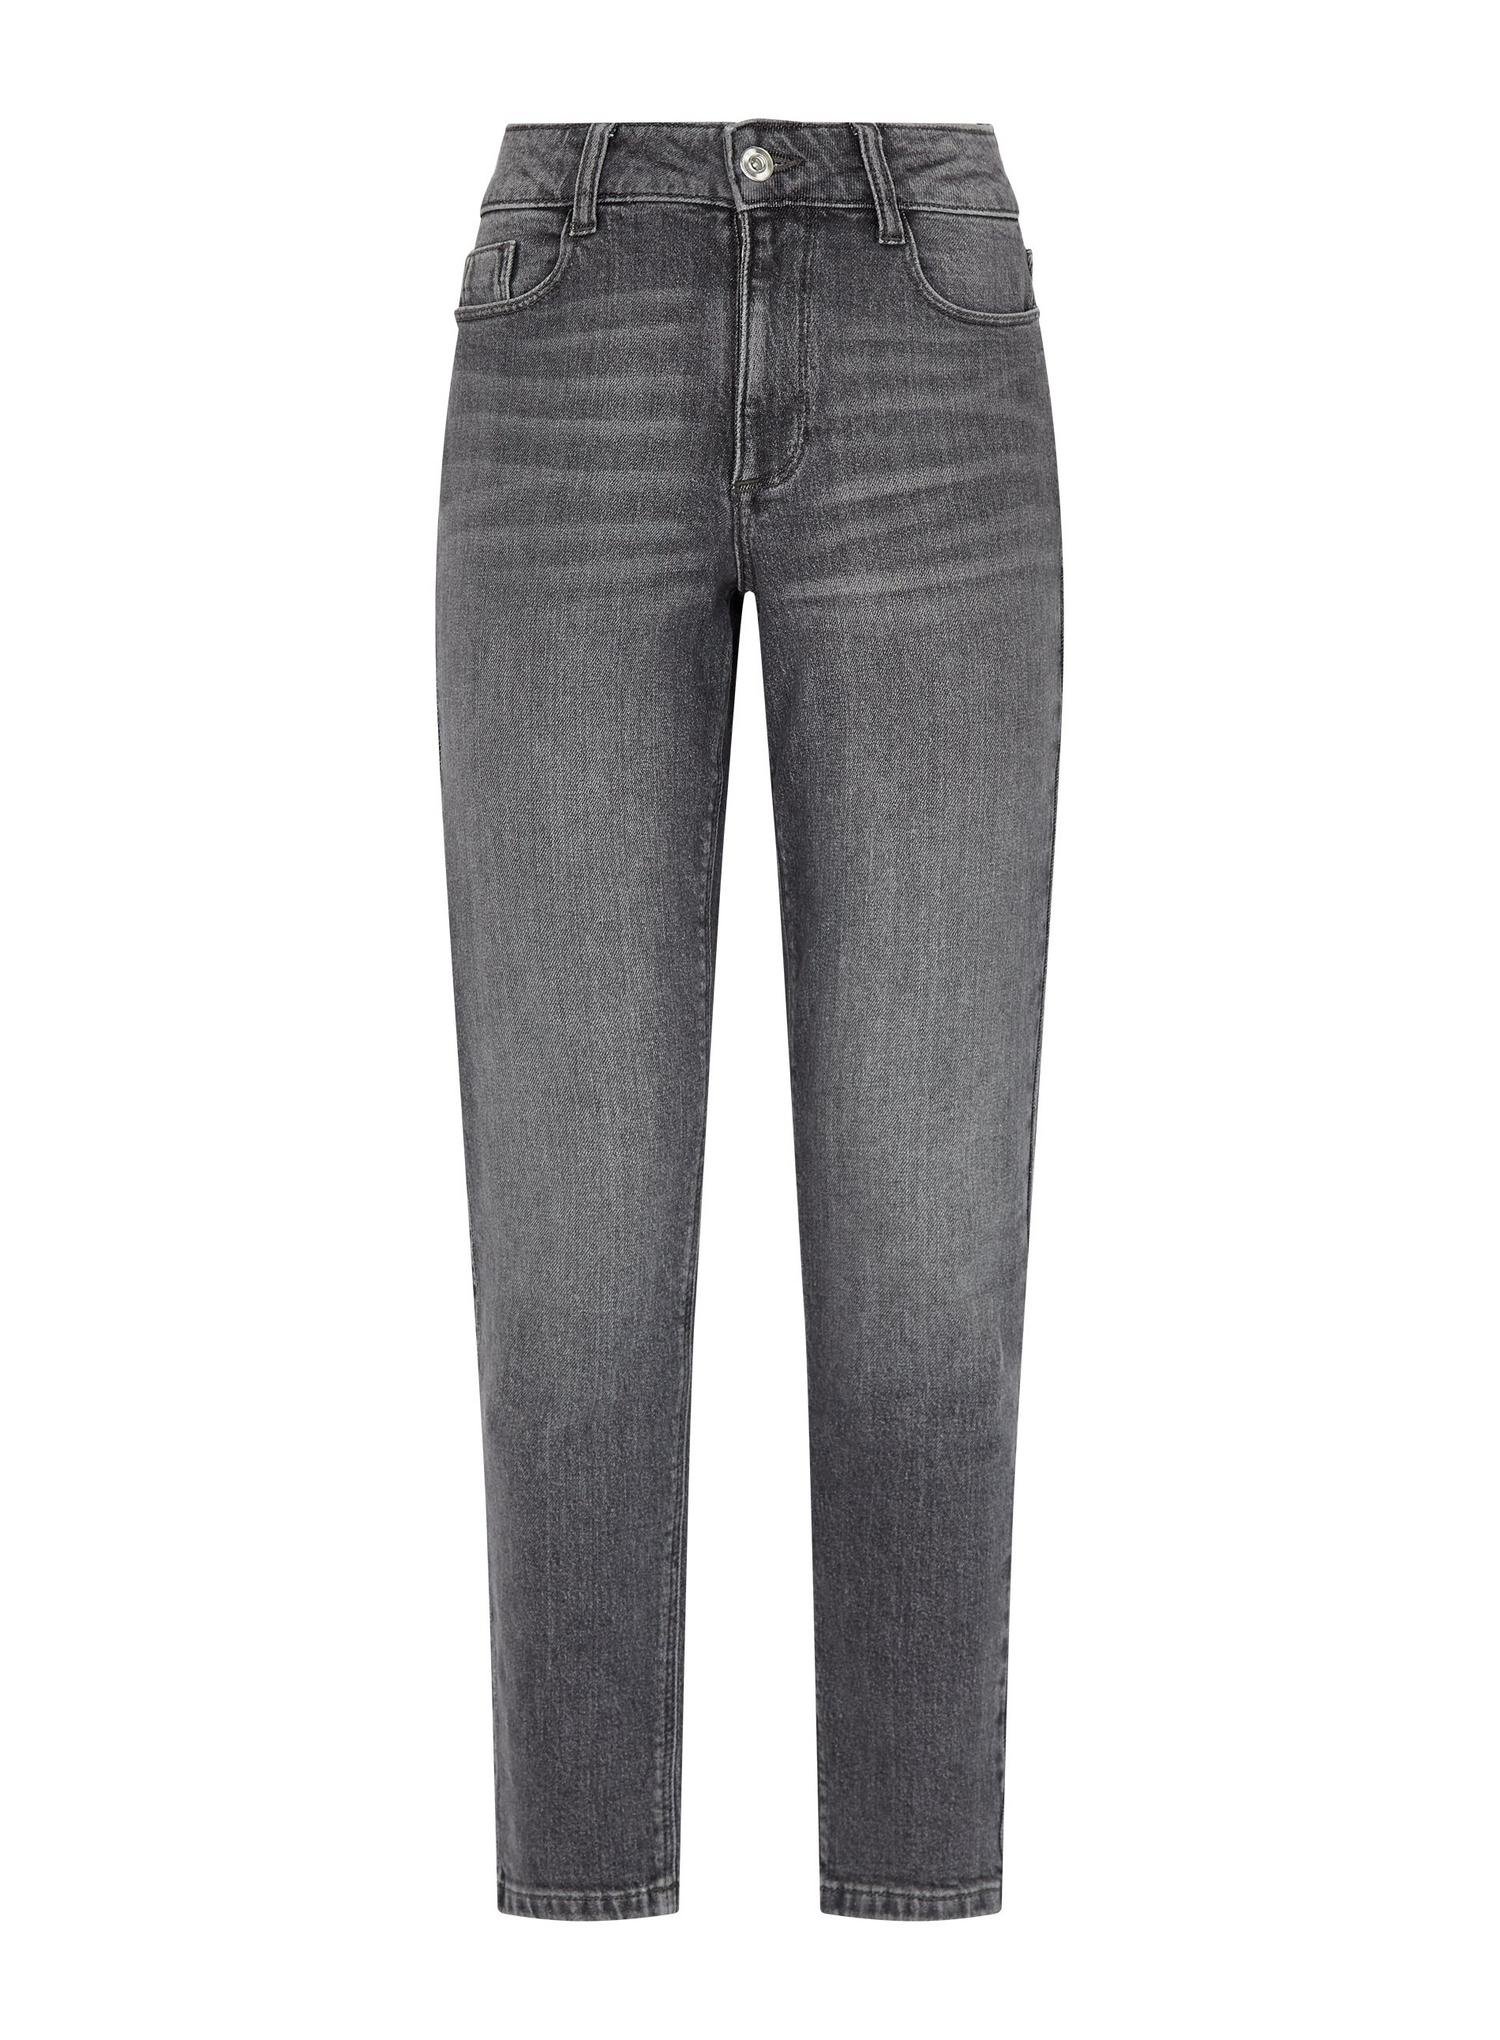 131 Grey Regular Mom Jeans With Organic Cotton image number 2